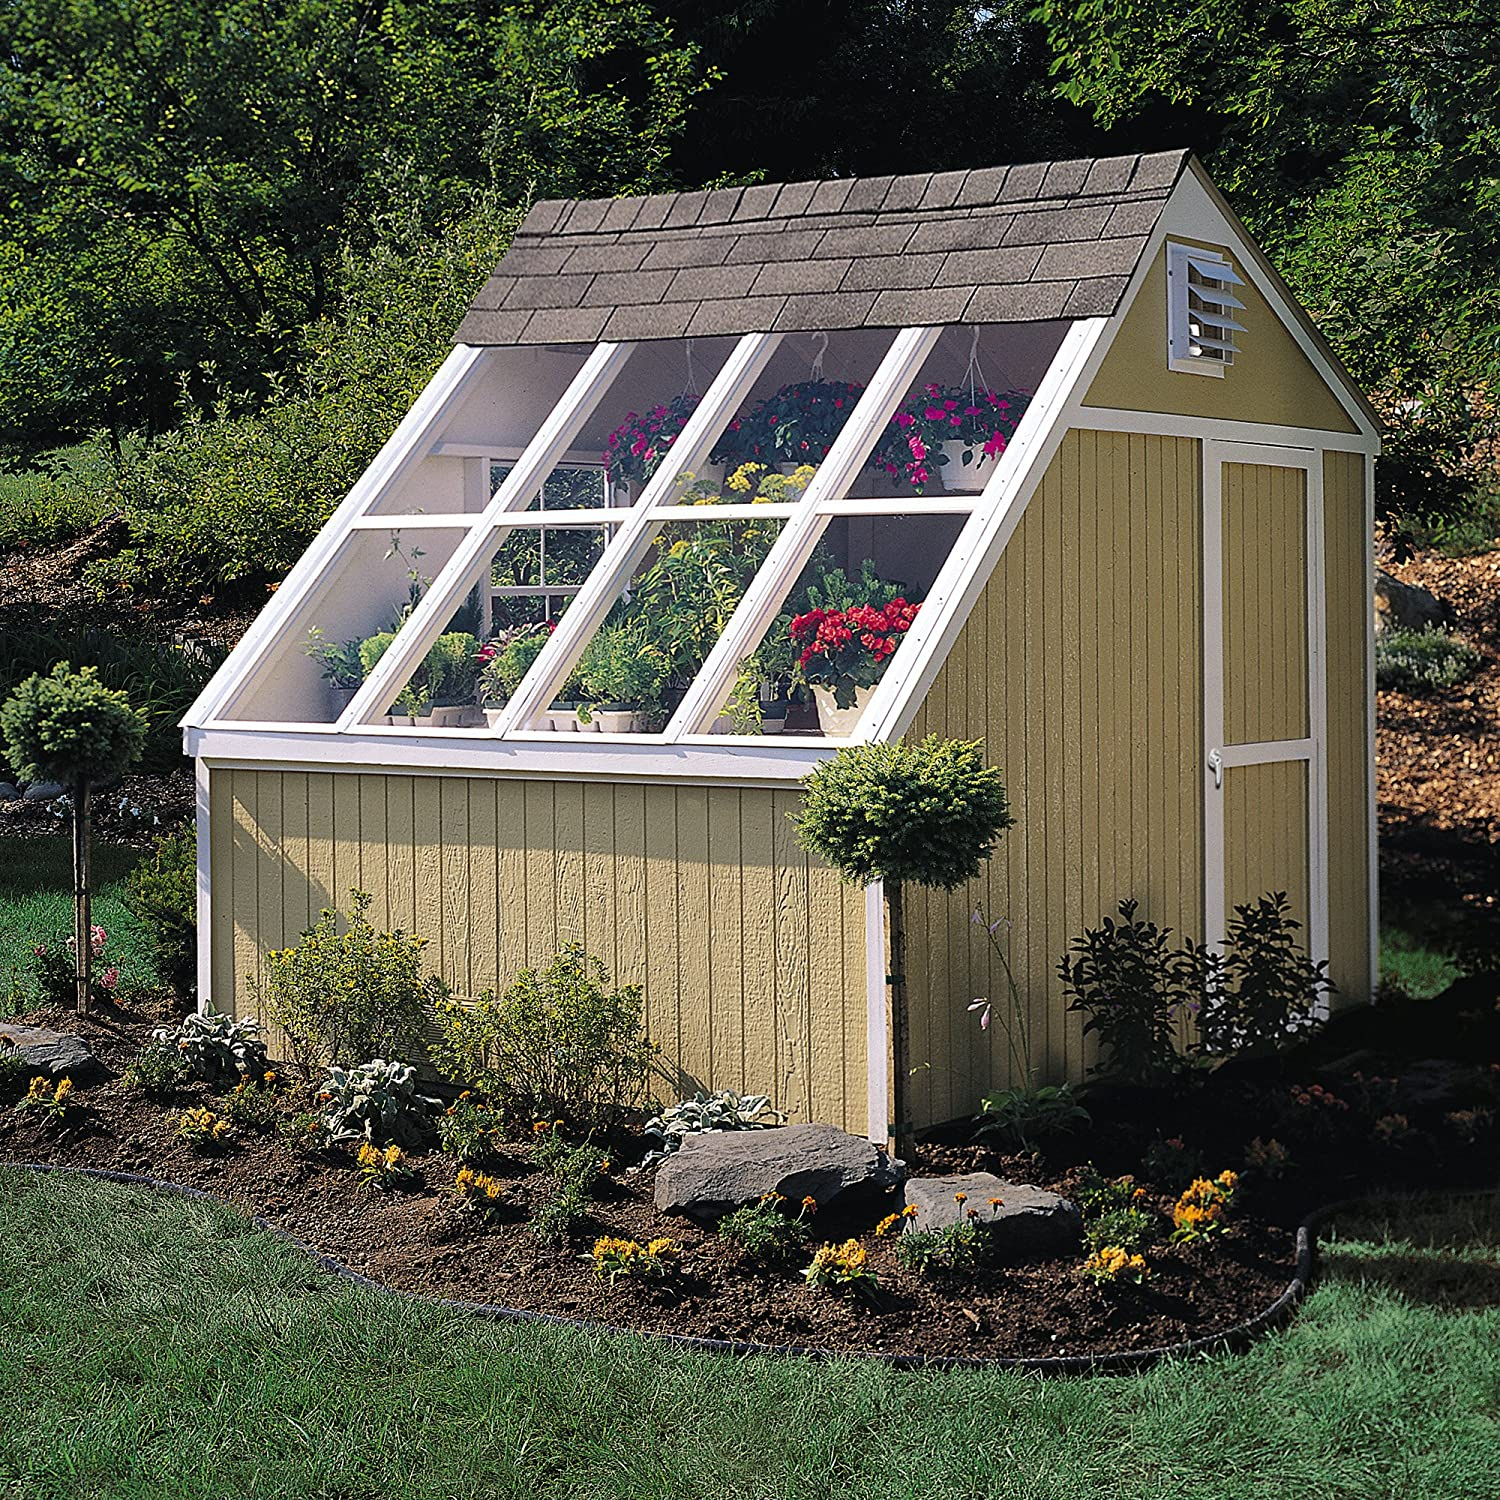 Amazon.com : Handy Home Products Phoenix Solar Shed with Floor, 10 on greenhouse cabinets, easy greenhouse plans, big greenhouse plans, backyard greenhouse plans, greenhouse garden designs, winter greenhouse plans, small greenhouse plans, attached greenhouse plans, homemade greenhouse plans, lean to greenhouse plans, diy greenhouse plans, pvc greenhouse plans, solar greenhouse plans, greenhouse architecture, greenhouse ideas, greenhouse layout, greenhouse windows, wood greenhouse plans, a-frame greenhouse plans, hobby greenhouse plans,